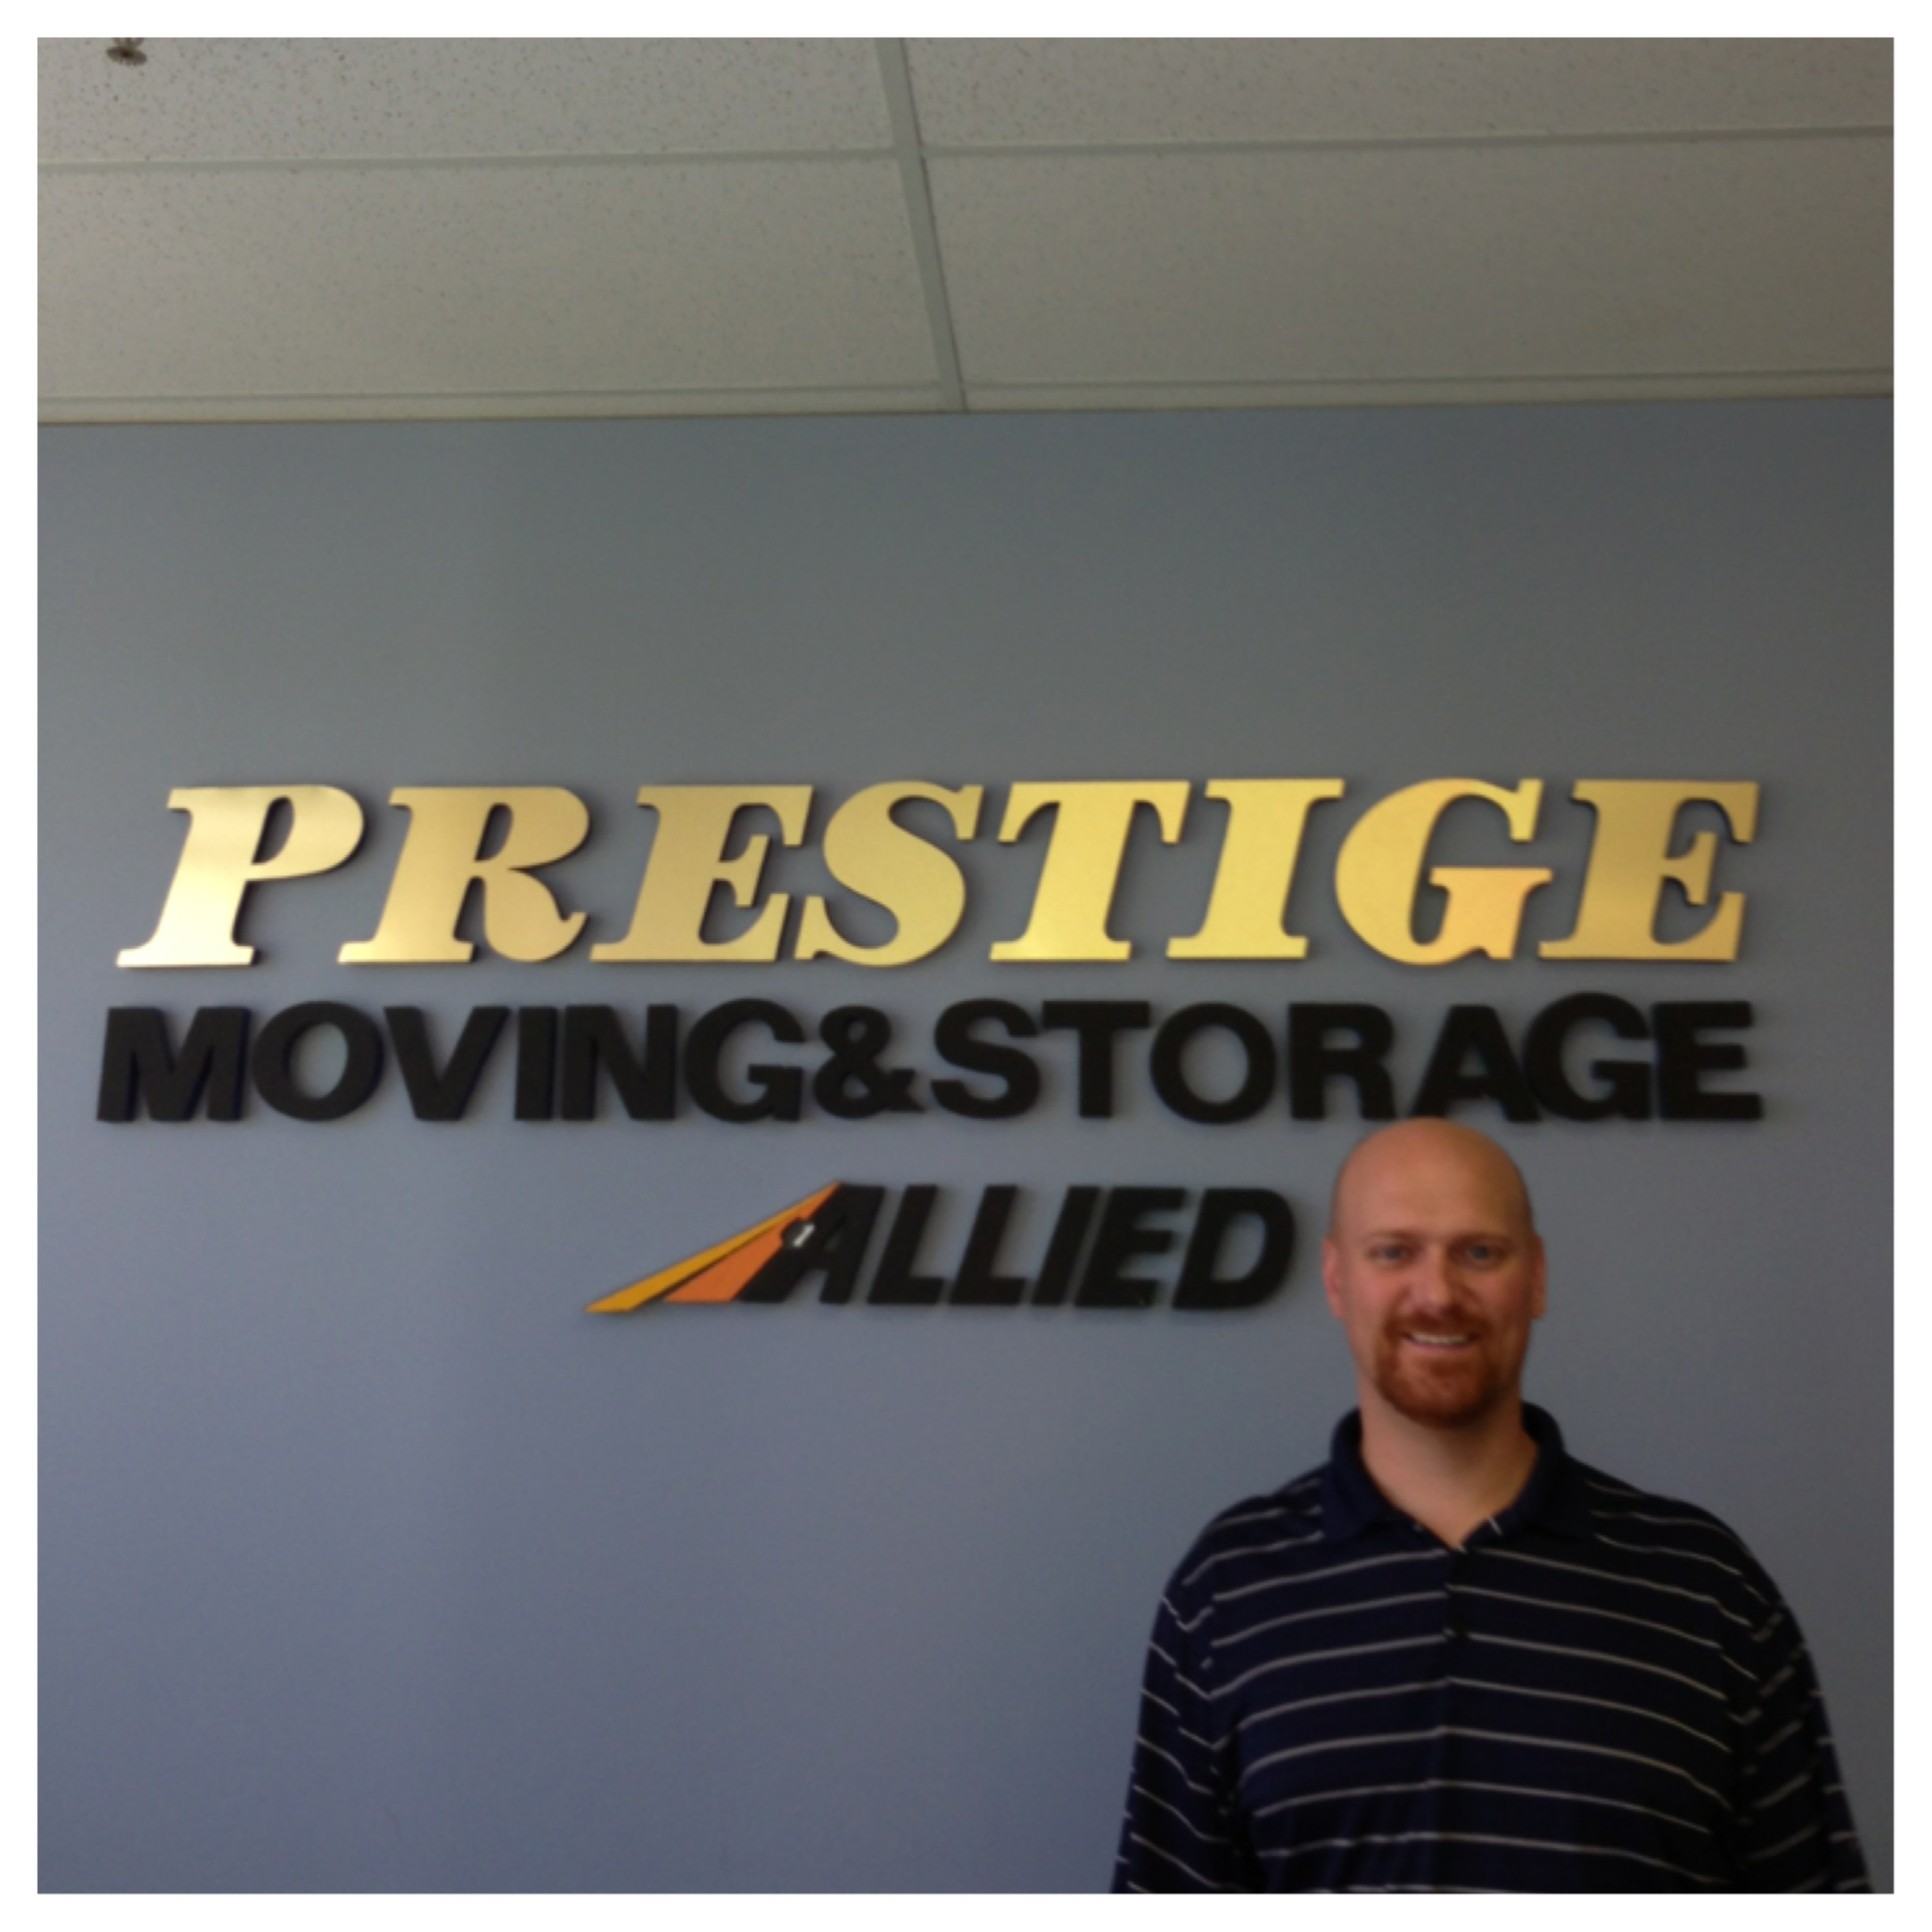 Congratulations to Brad Bagent for 9 Years of Service With Prestige Moving & Storage